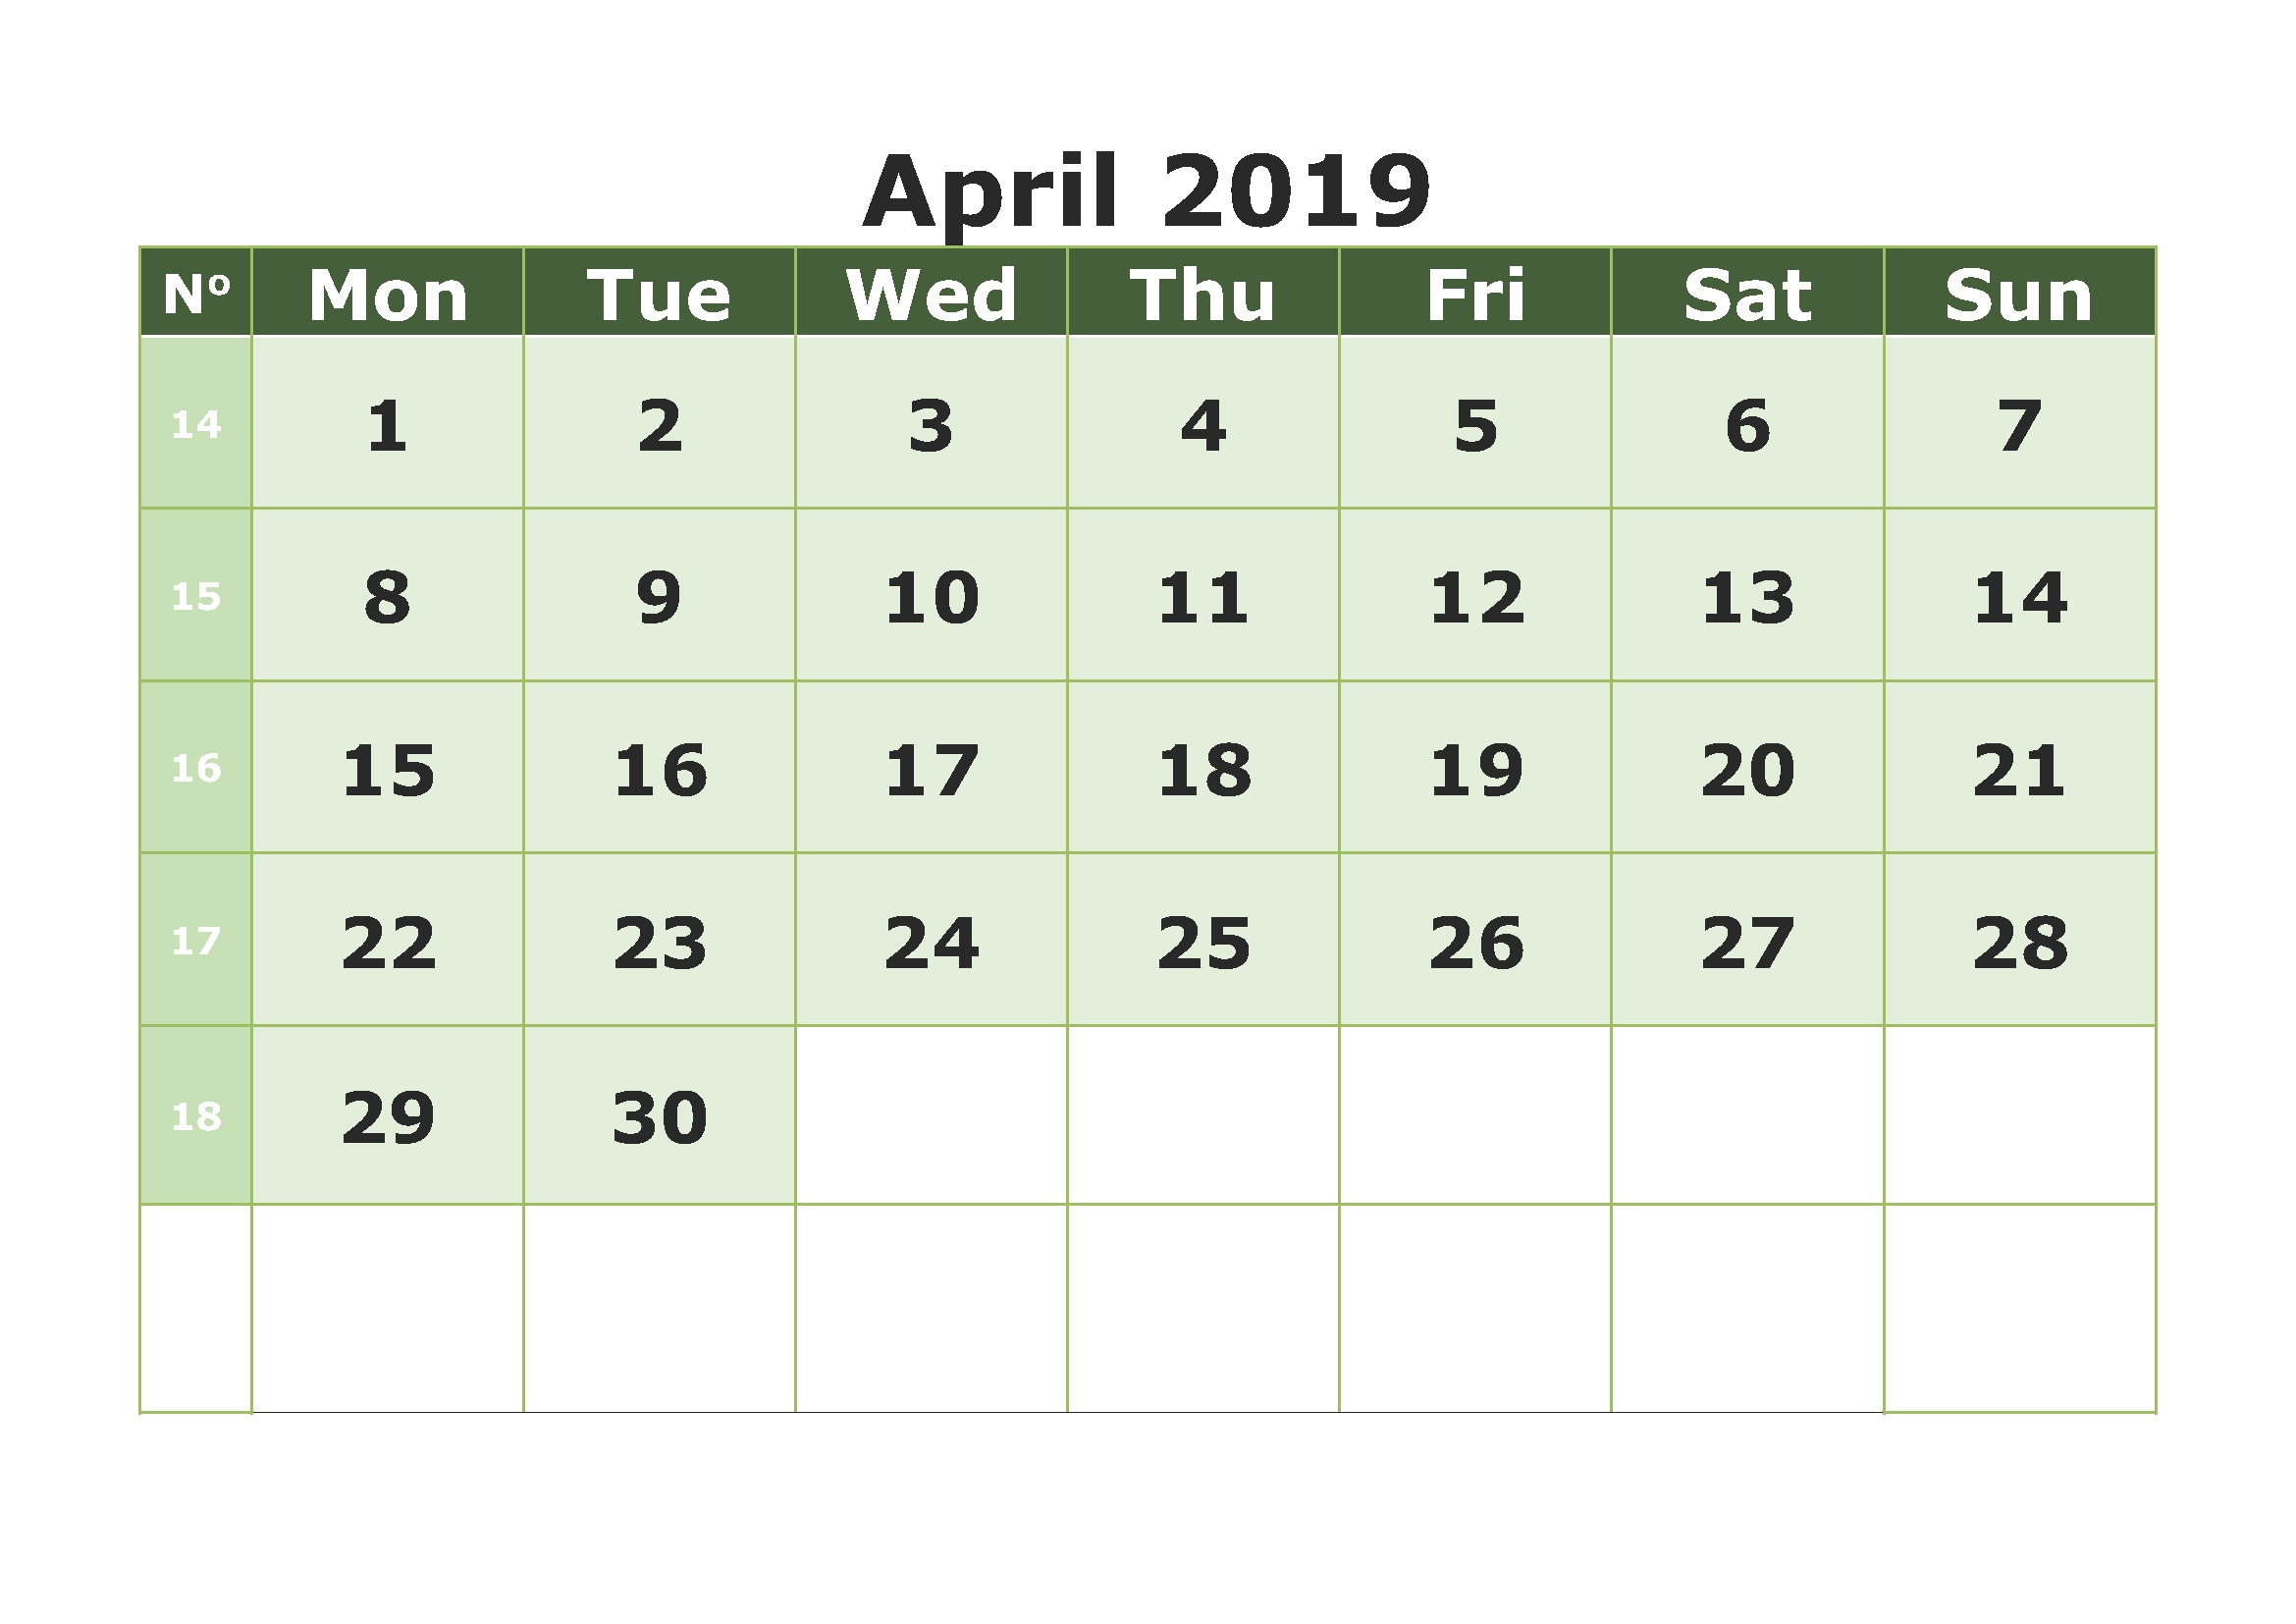 april 2019 calendar printable template::April 2019 iPhone Calendar